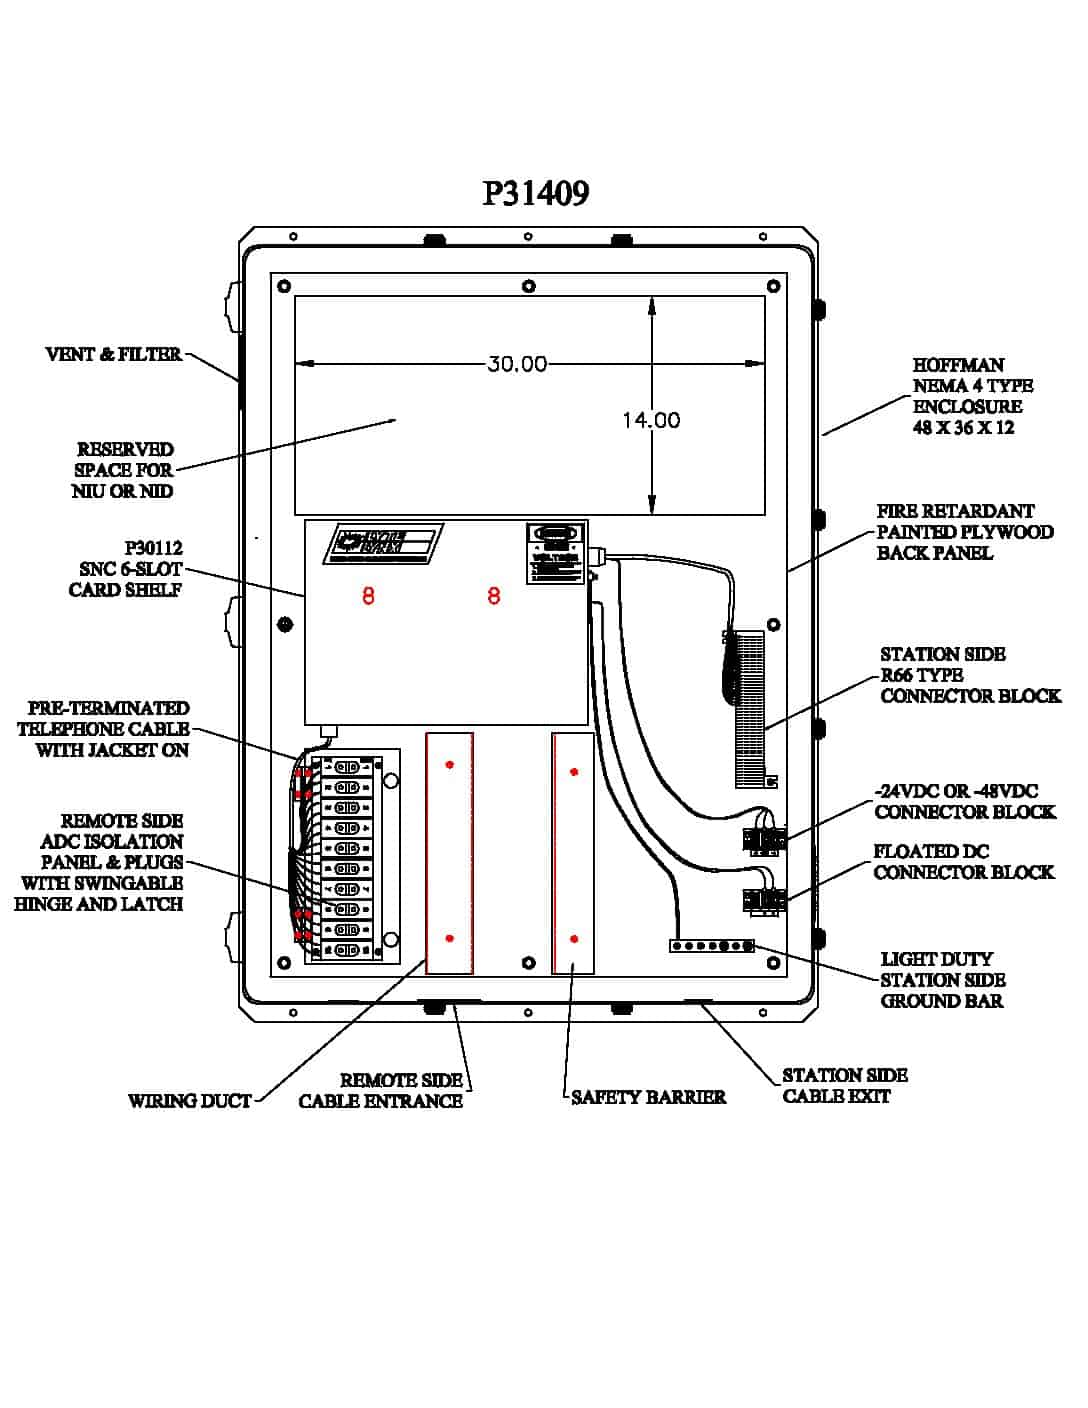 P31409 Turnkey Protection Packages – 6 slot PDF thumbnail